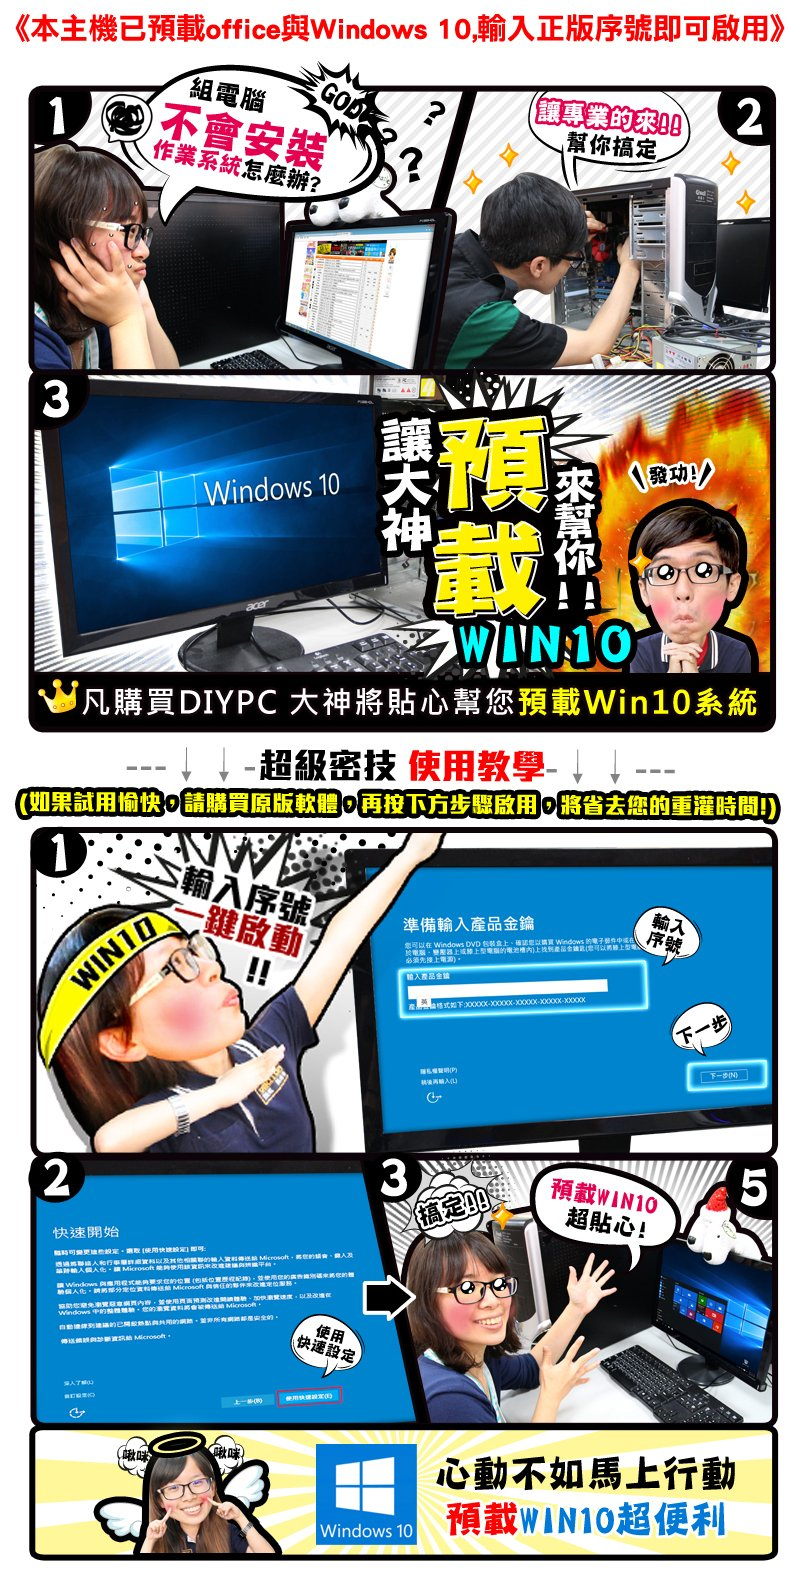 預載windows 10超便利